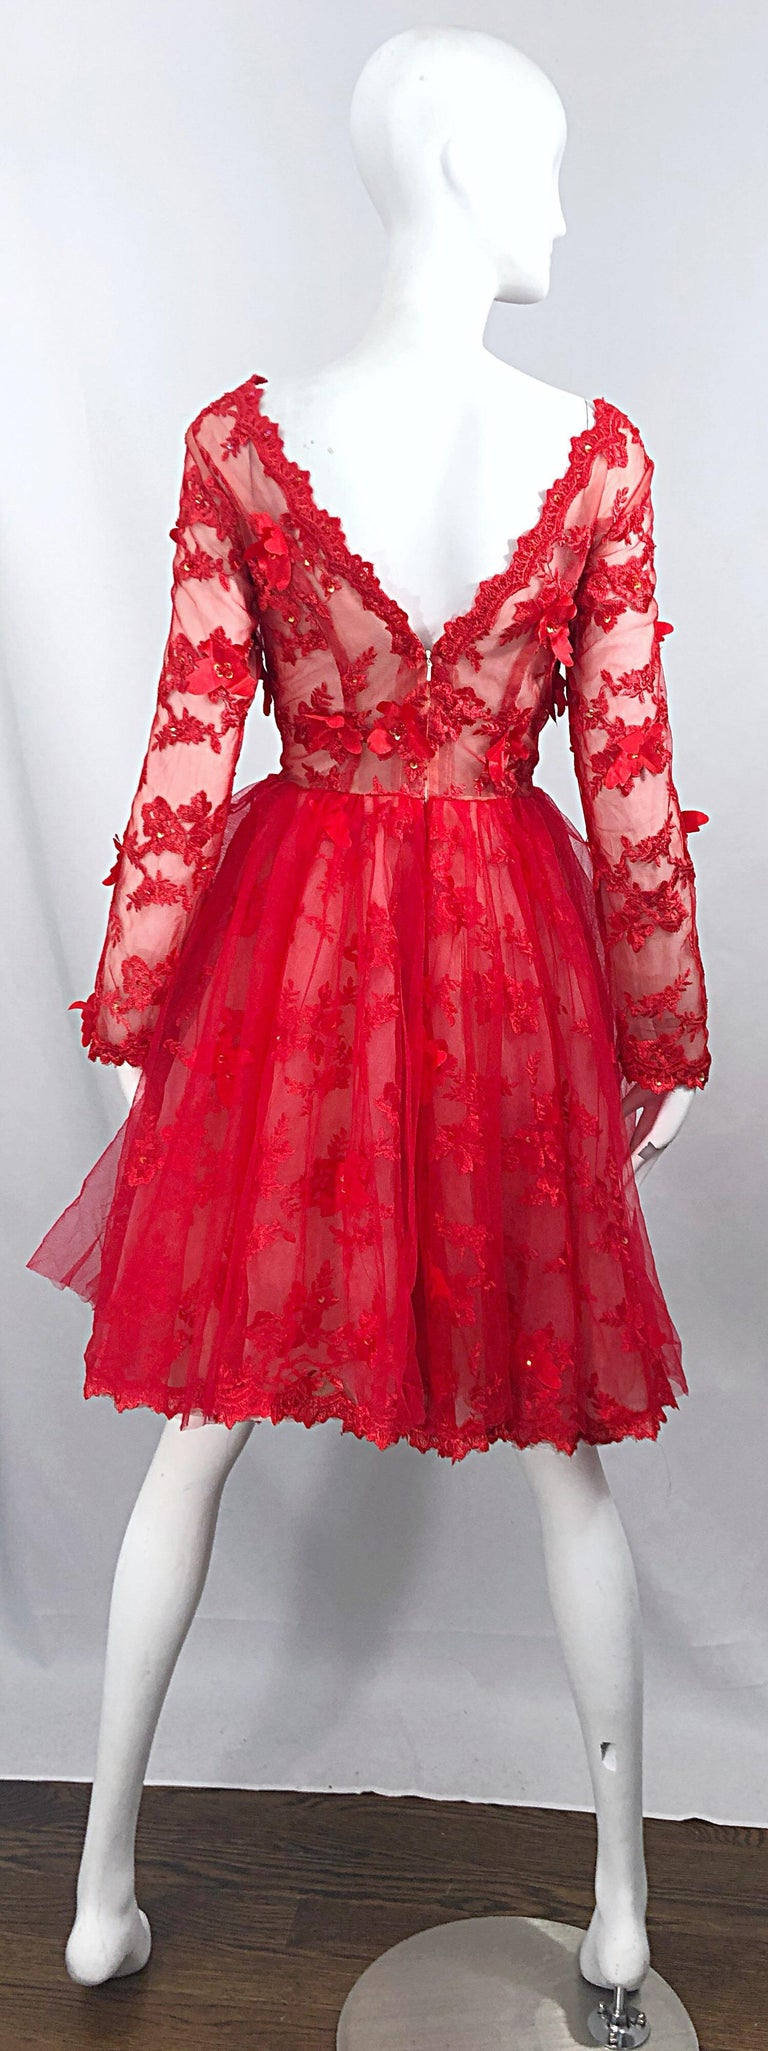 Vintage Couture 1990s Does 1950s Semi Sheer Sz 10 / 12 Lipstick Red Sequin Dress In Excellent Condition For Sale In Chicago, IL